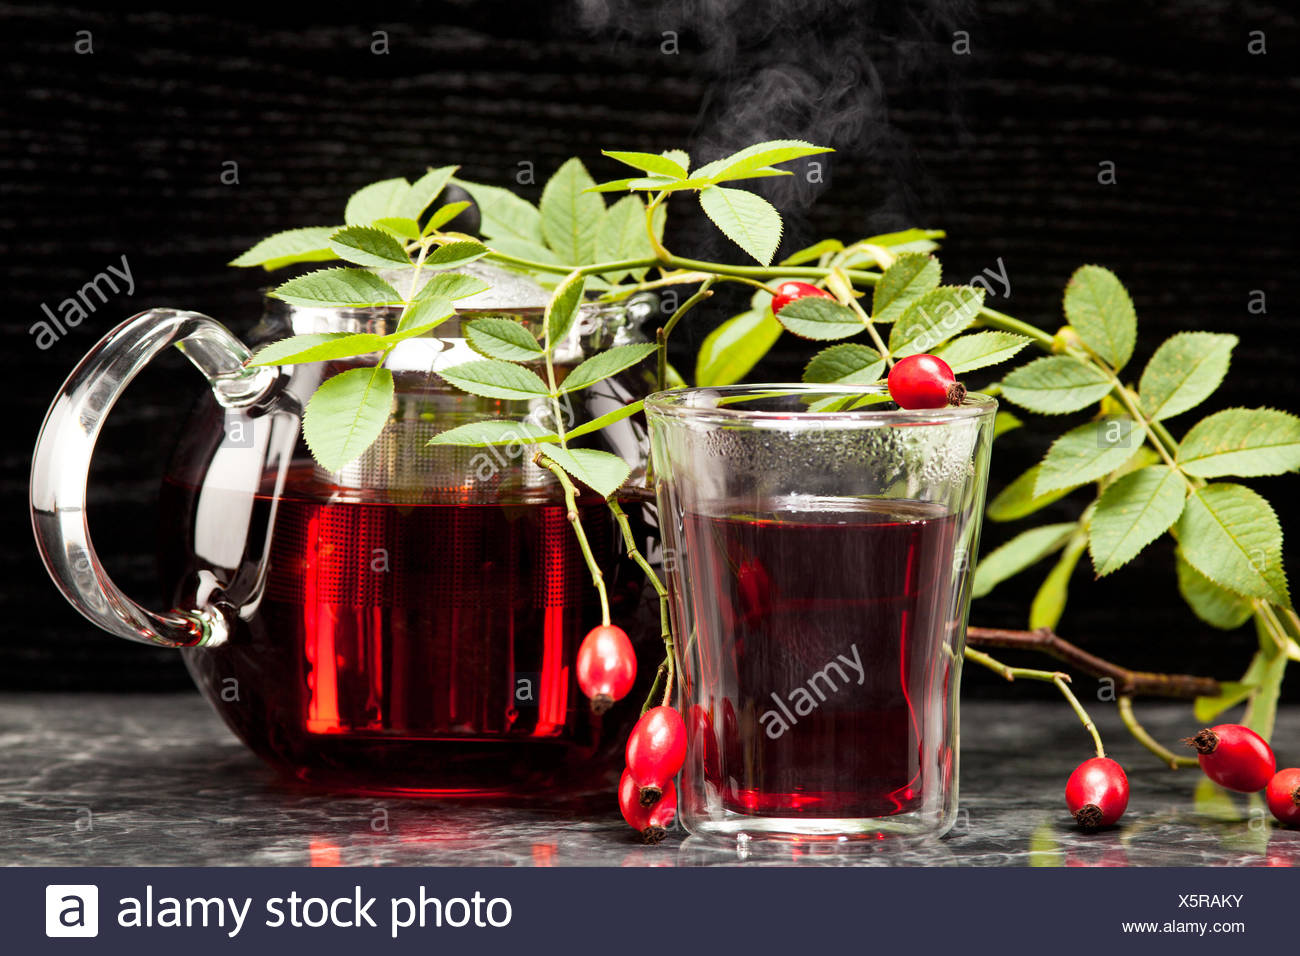 Heisser Hagebuttentee im Glas Stock Photo